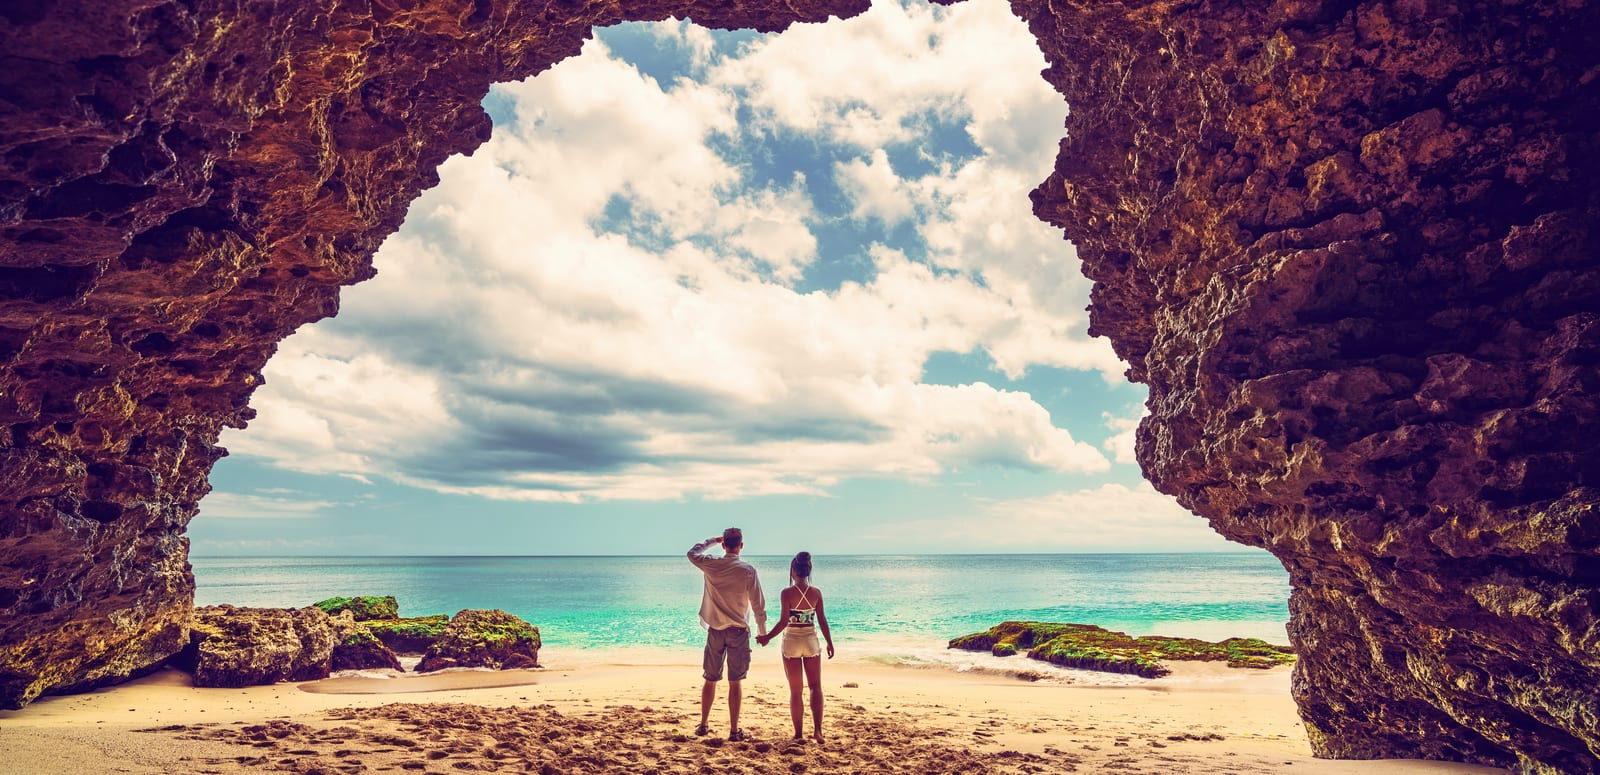 Bali And Singapore Honeymoon Package For 7 Days